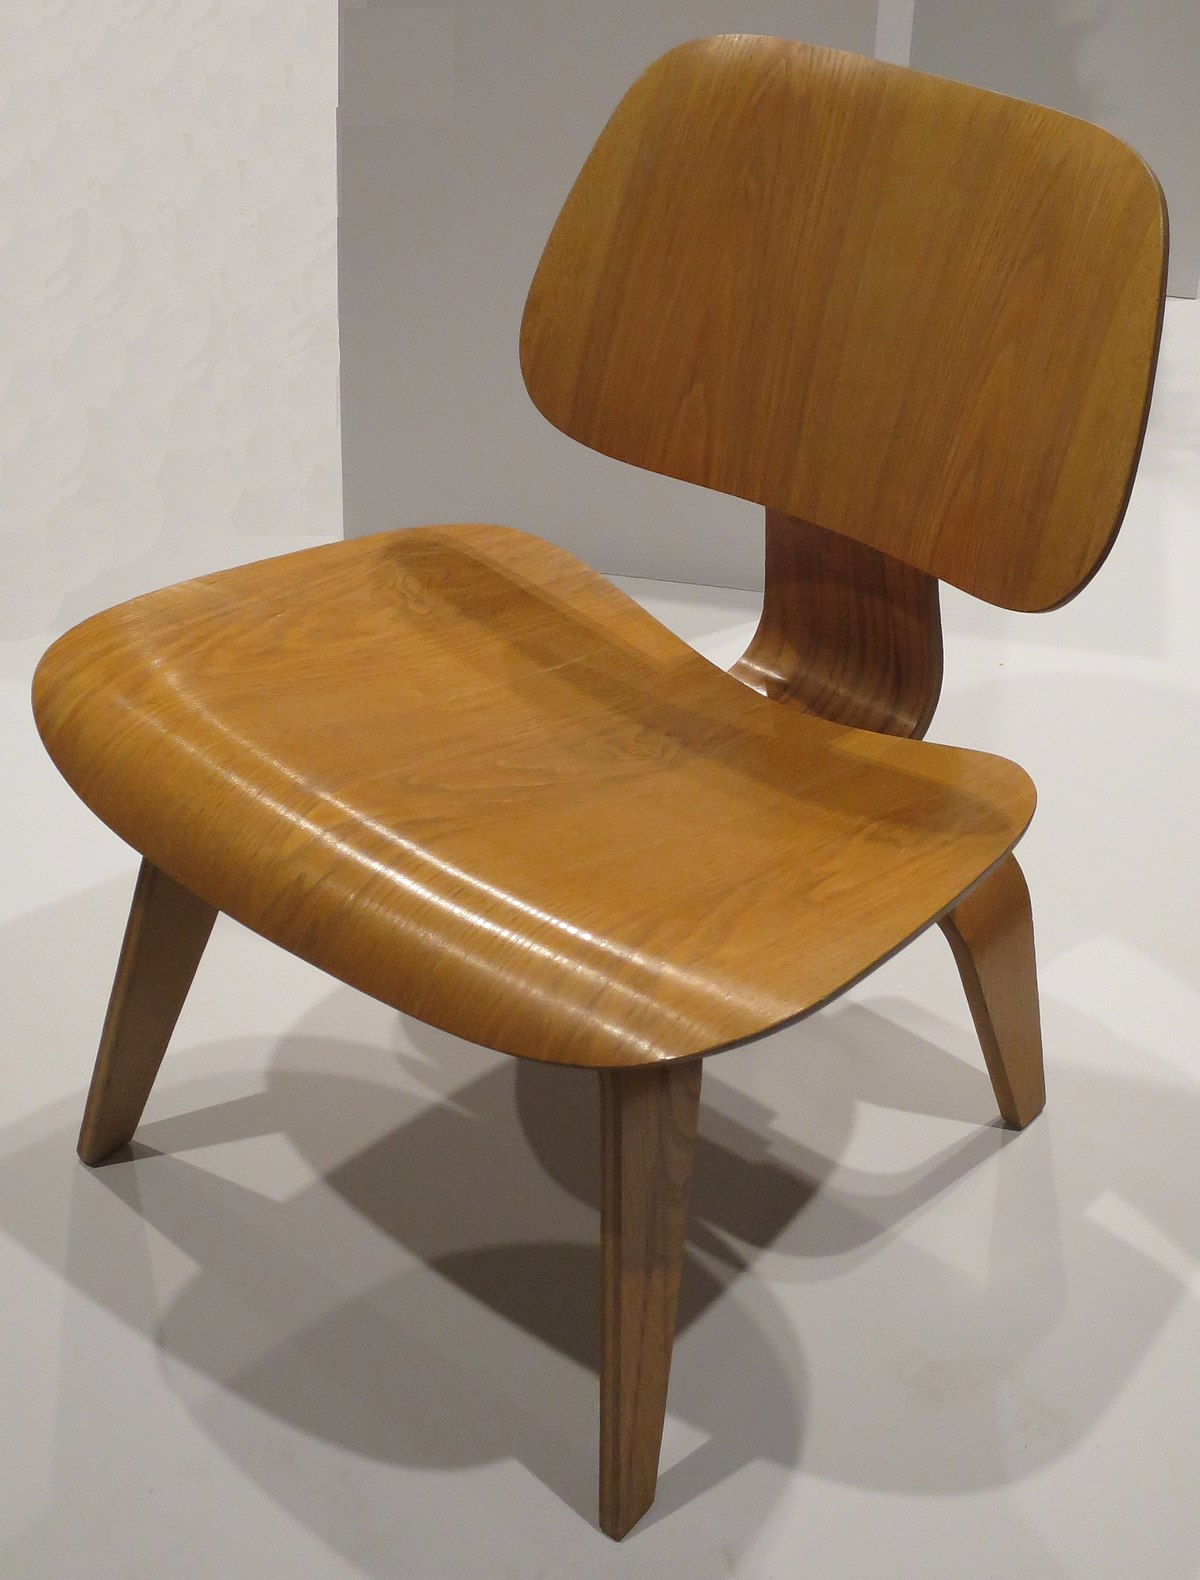 Designer Chairs Used Eames Lounge Chair Wood Wikipedia